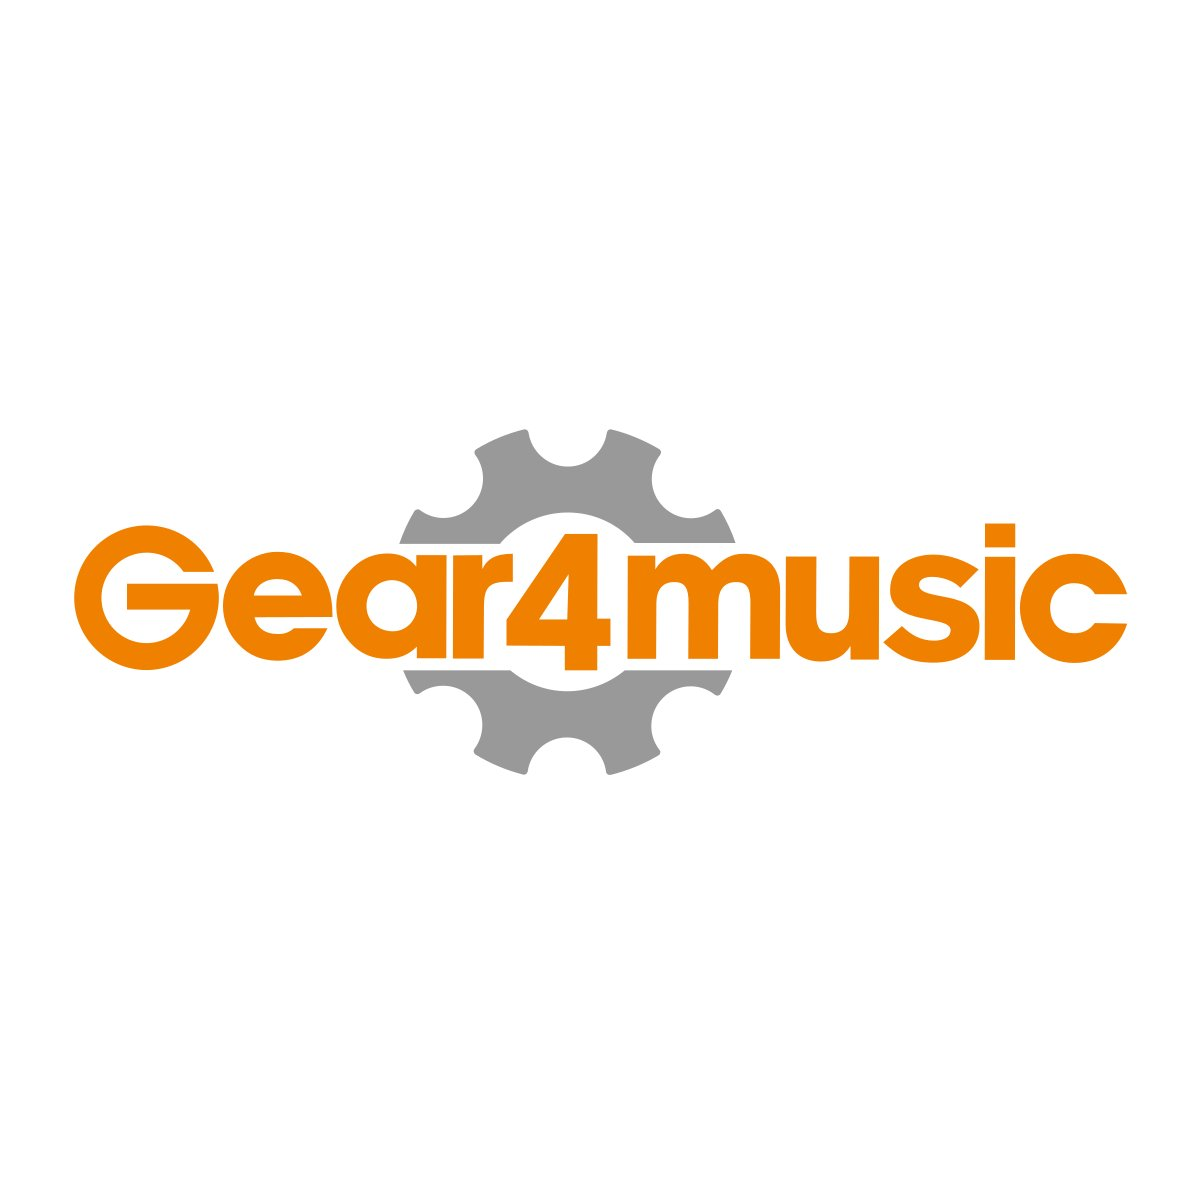 3/4 Single-Cutaway Akustikgitarre von Gear4music